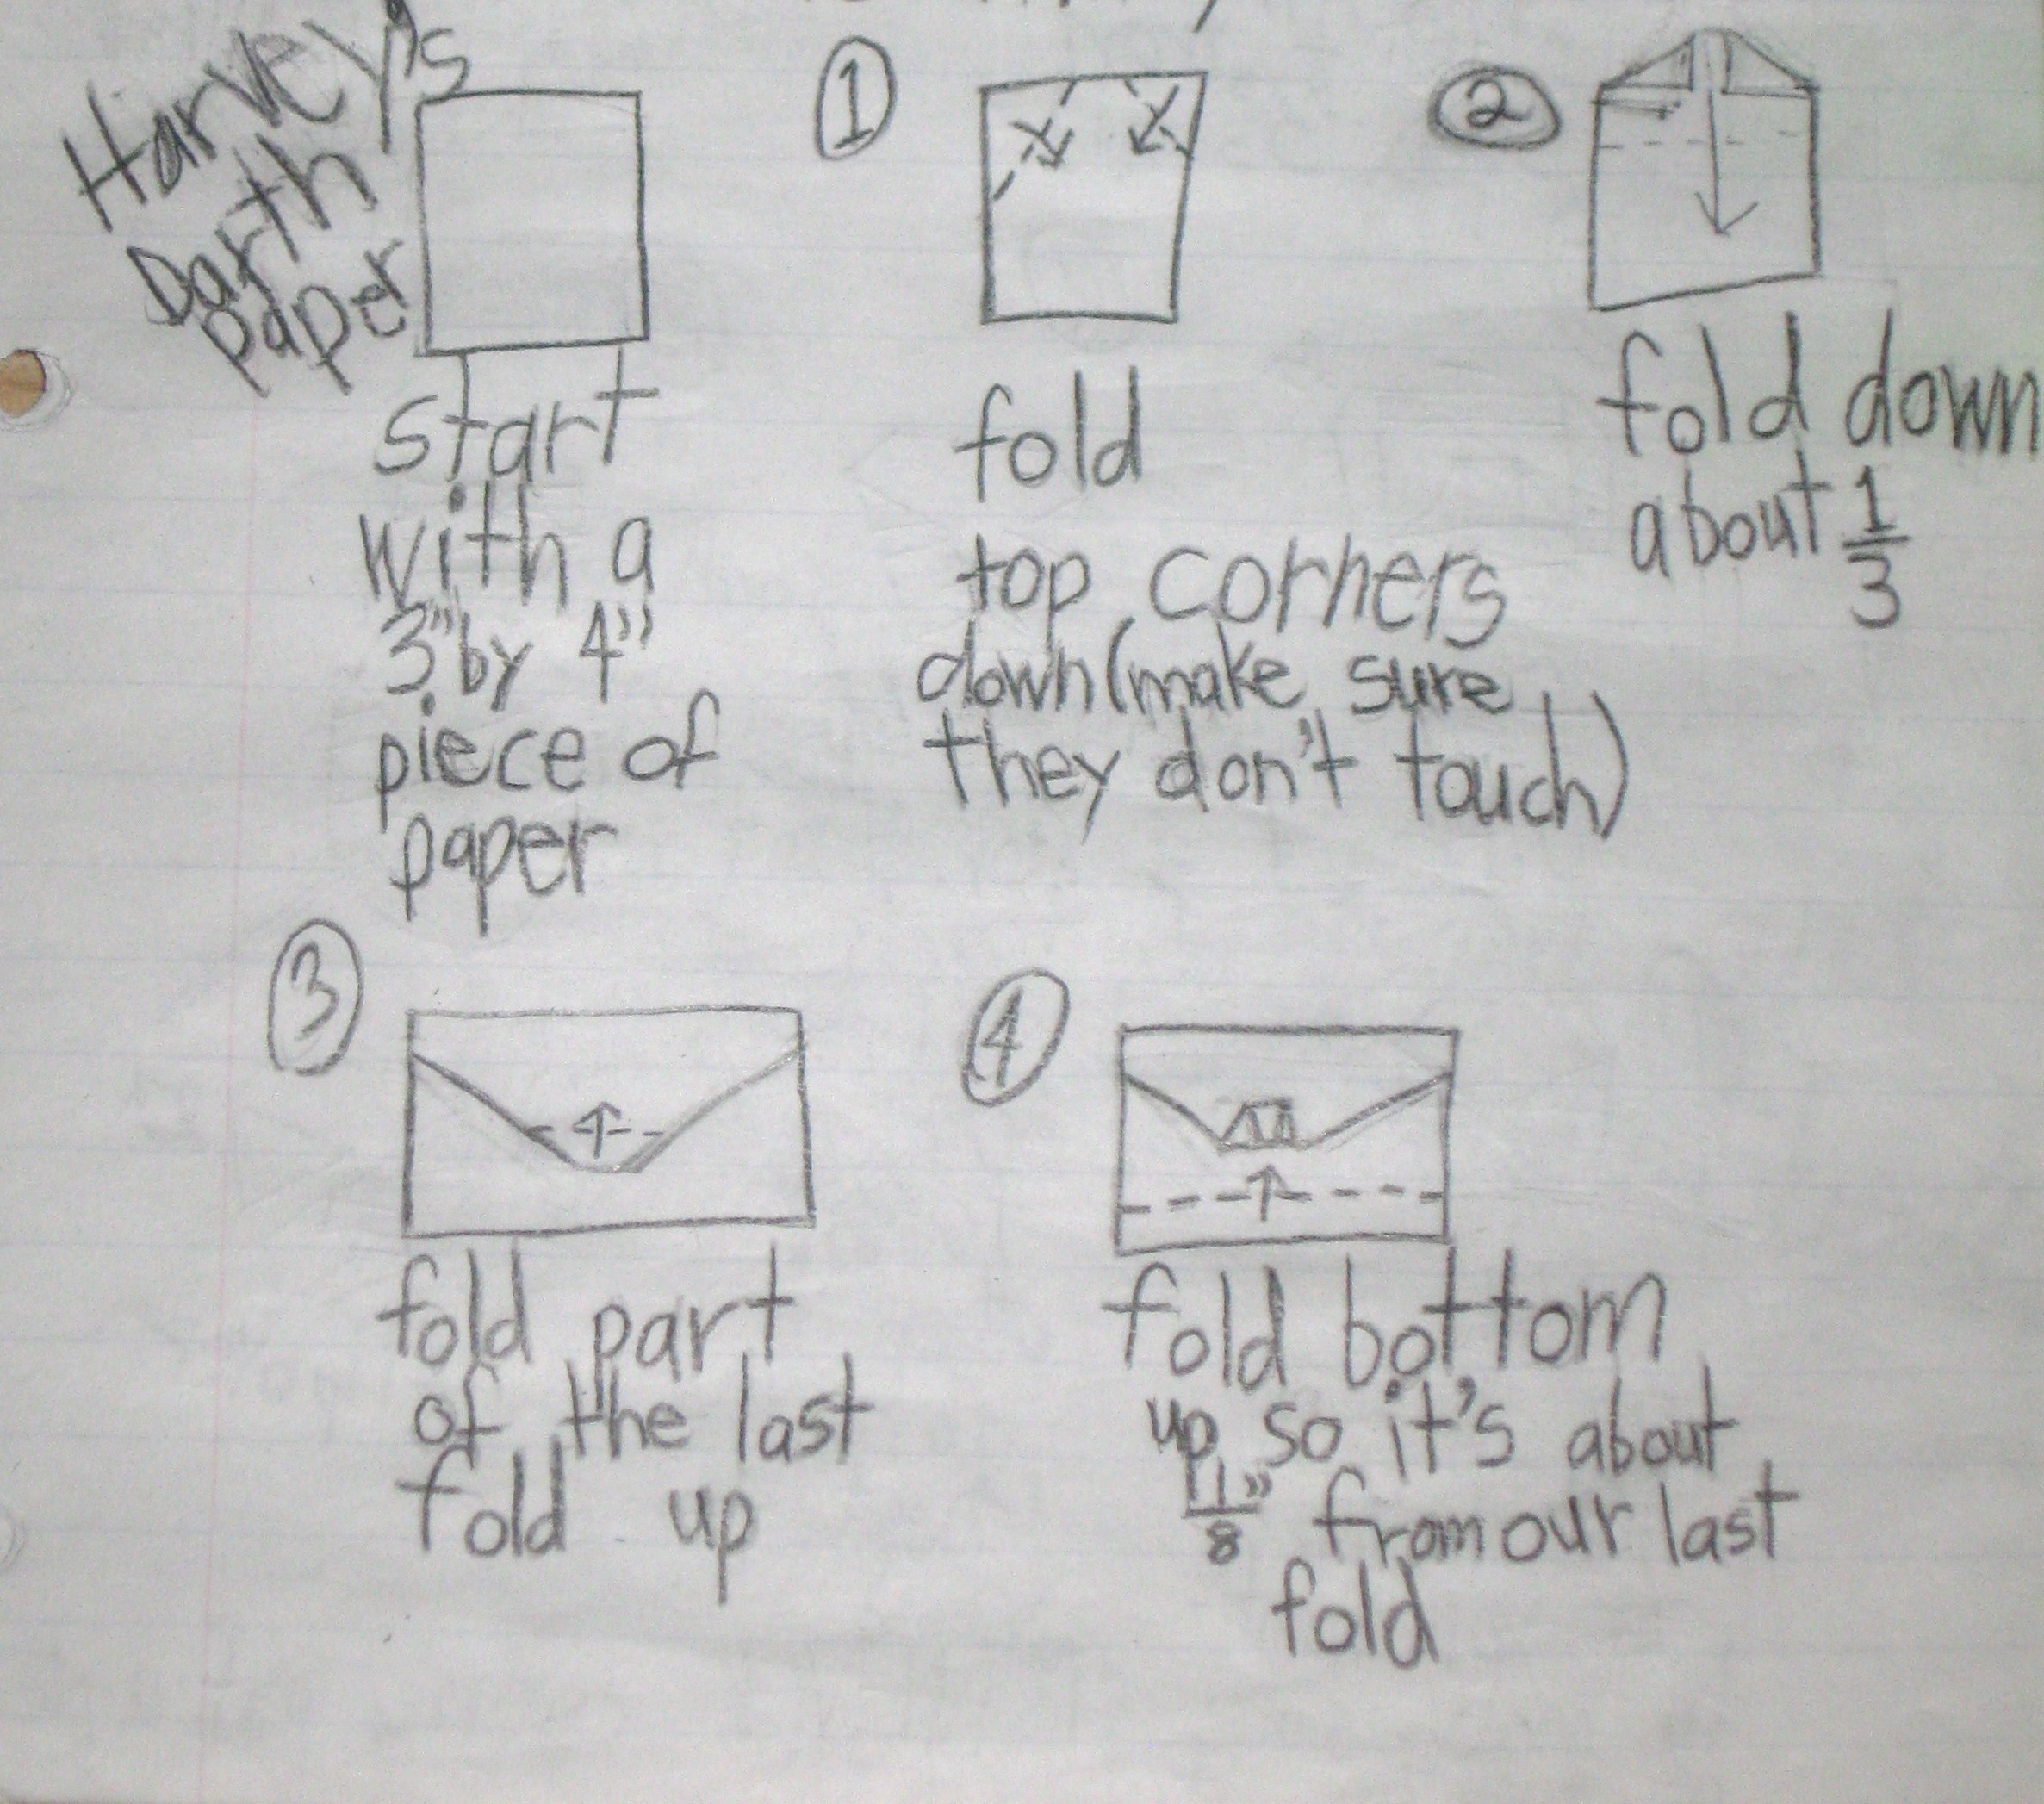 origami darth paper The first sequel, darth paper strikes back (isbn 9781419705175), takes place one year after the events of the strange case of origami yoda the book includes instructions for a simpler version of darth paper (whose designer is known as super-folder ben), as well a 5-fold version of origami yoda it is a dark time at ralph mcquarrie middle school.